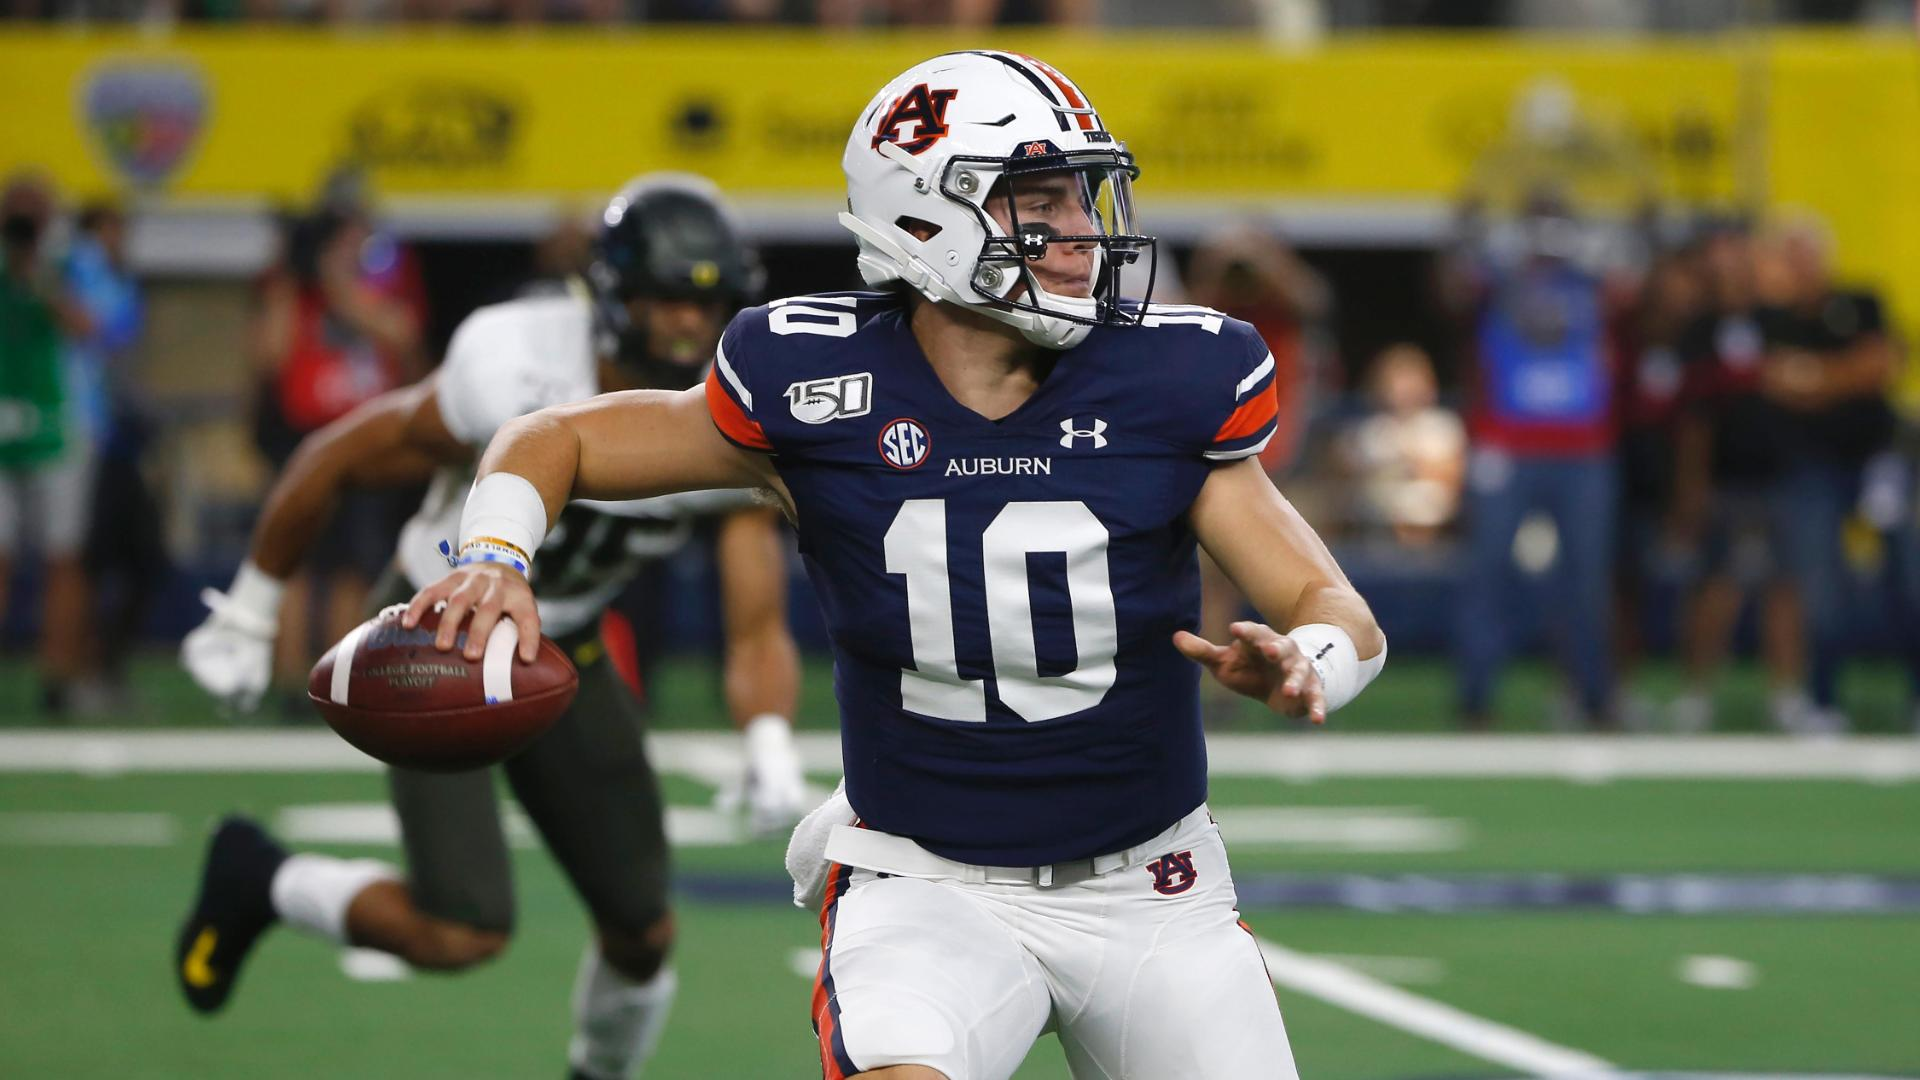 Nix's heroics lead to Auburn's comeback win over Oregon